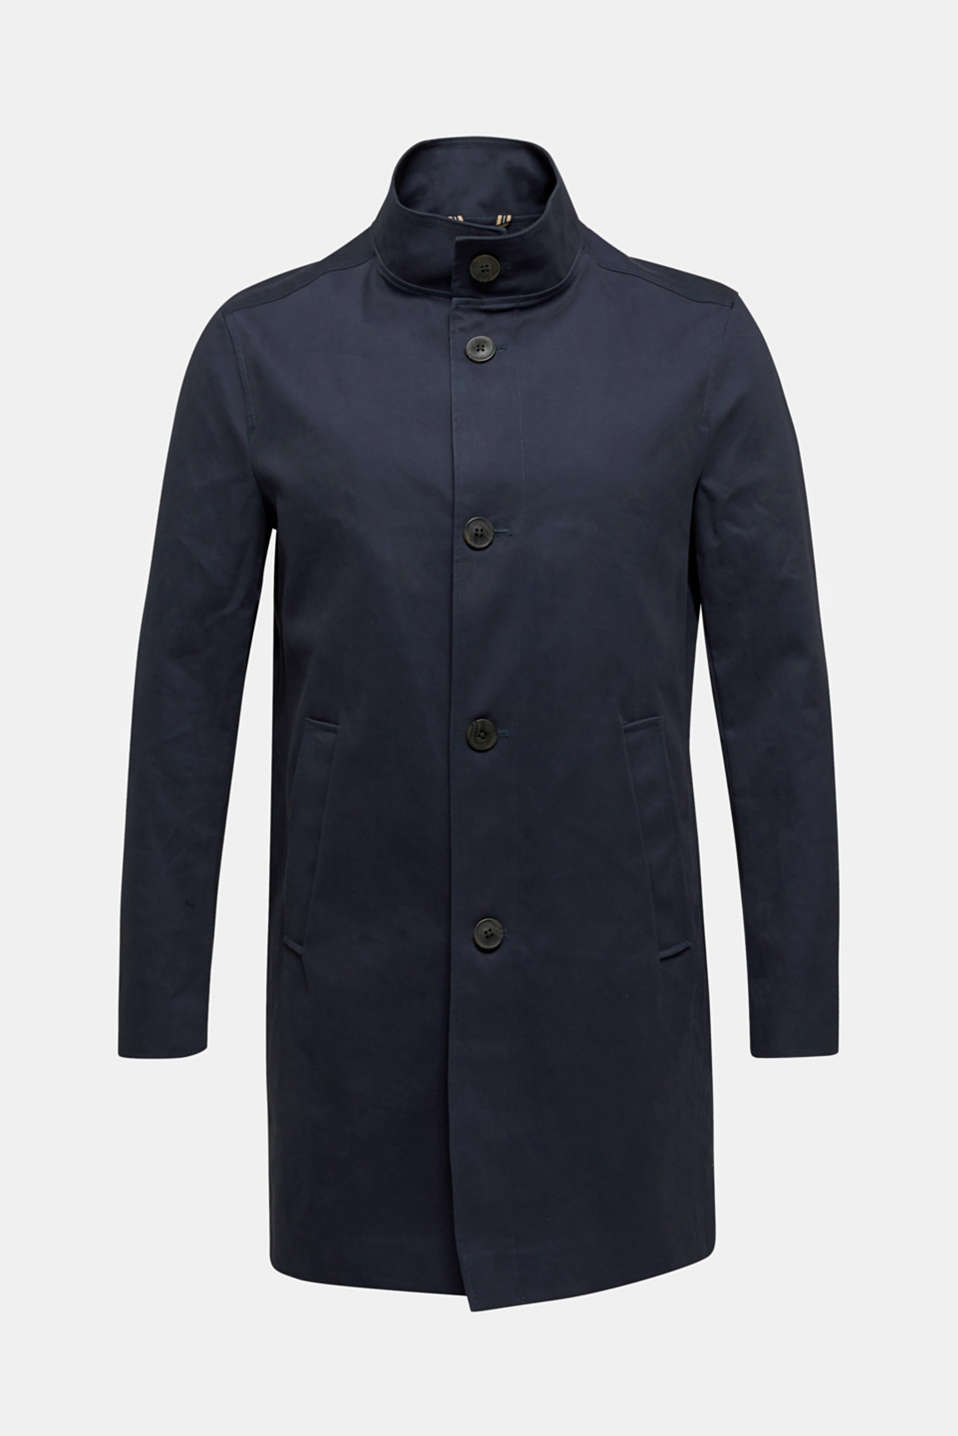 Coat with a stand-up collar, 100% cotton, DARK BLUE, detail image number 5